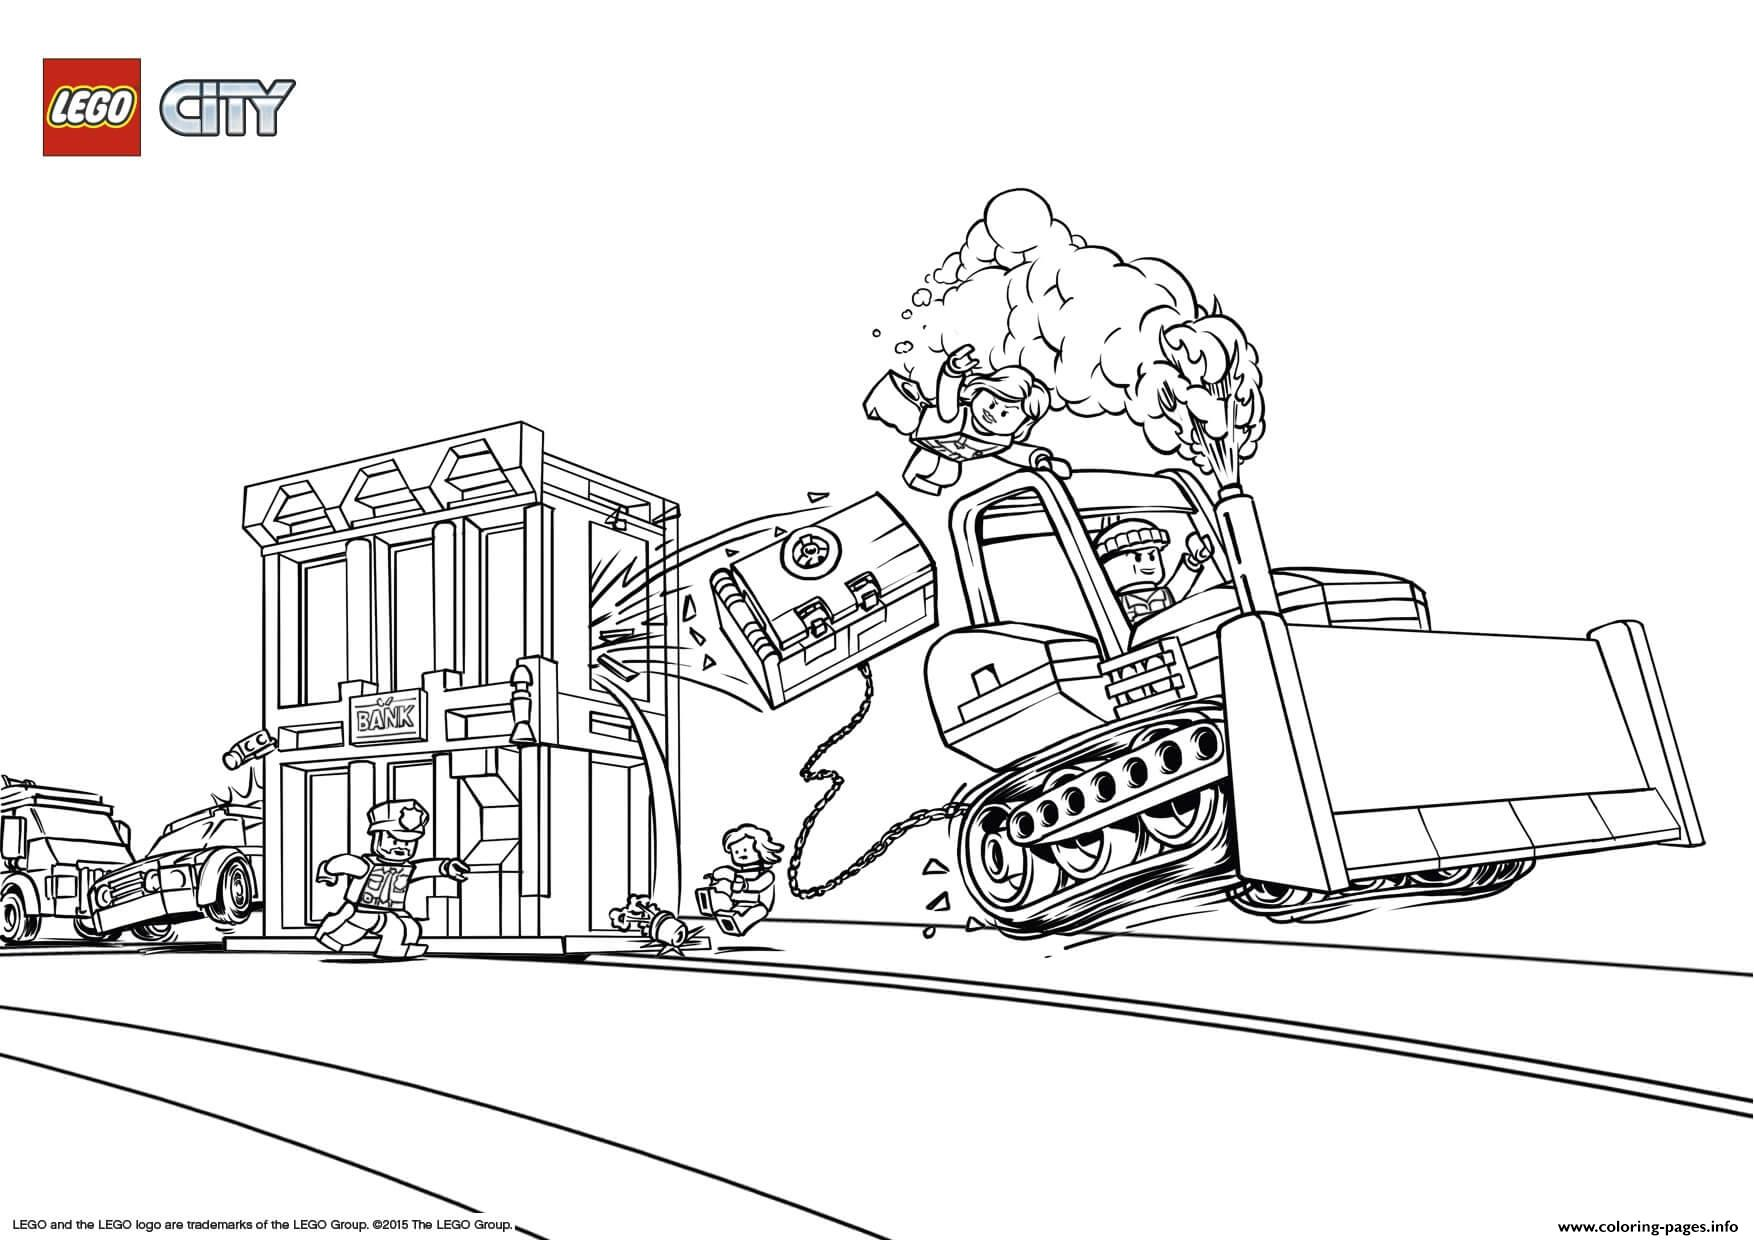 Lego City Catch The Crooks Coloring Pages Printable